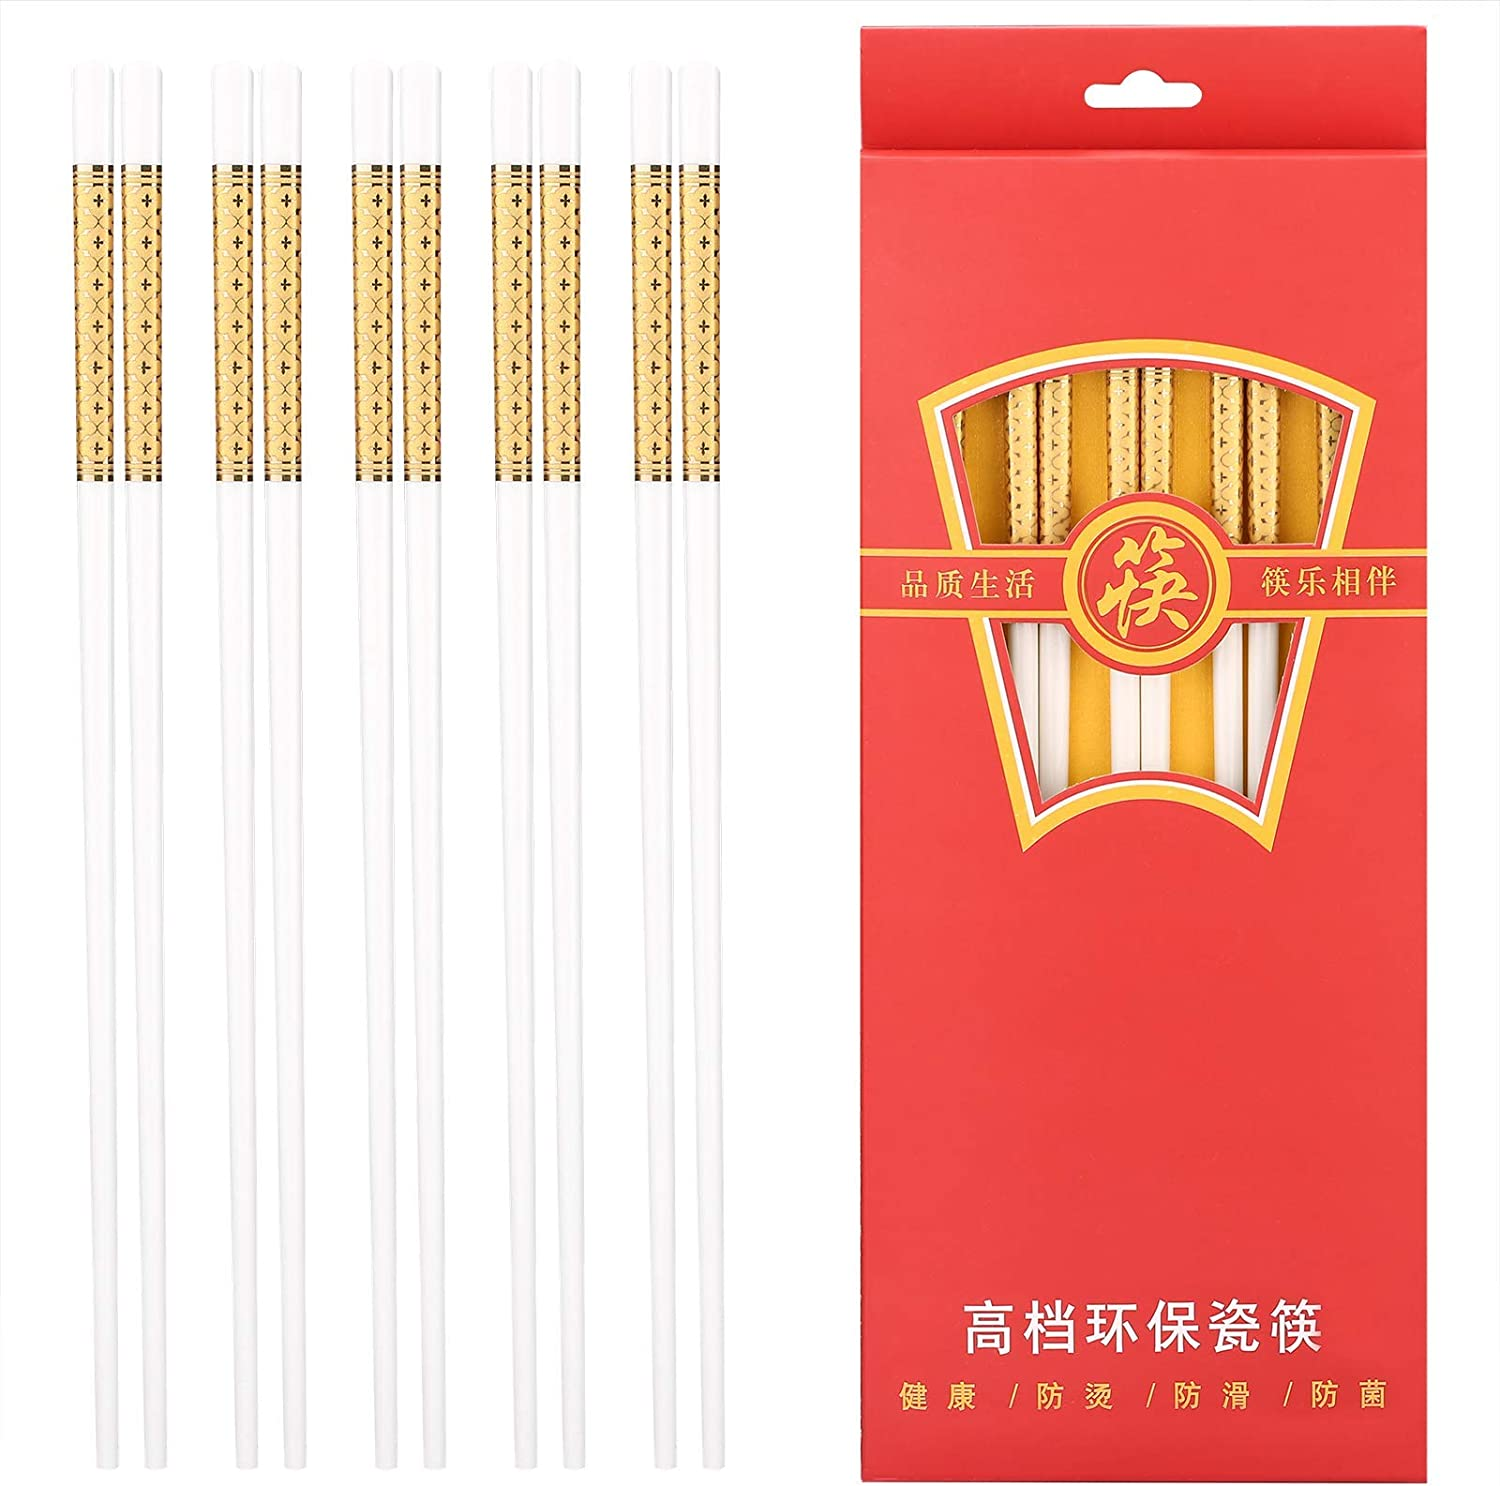 Chopsticks Reusable, Yarloo Ceramic Chopsticks for Sushi or Other Japanese Chinese Korean Cooking Foods, Mildewproof Healthy and Easy to Clean, 10 Pairs Gift Package, Dishwasher Safe (Royal Gold)